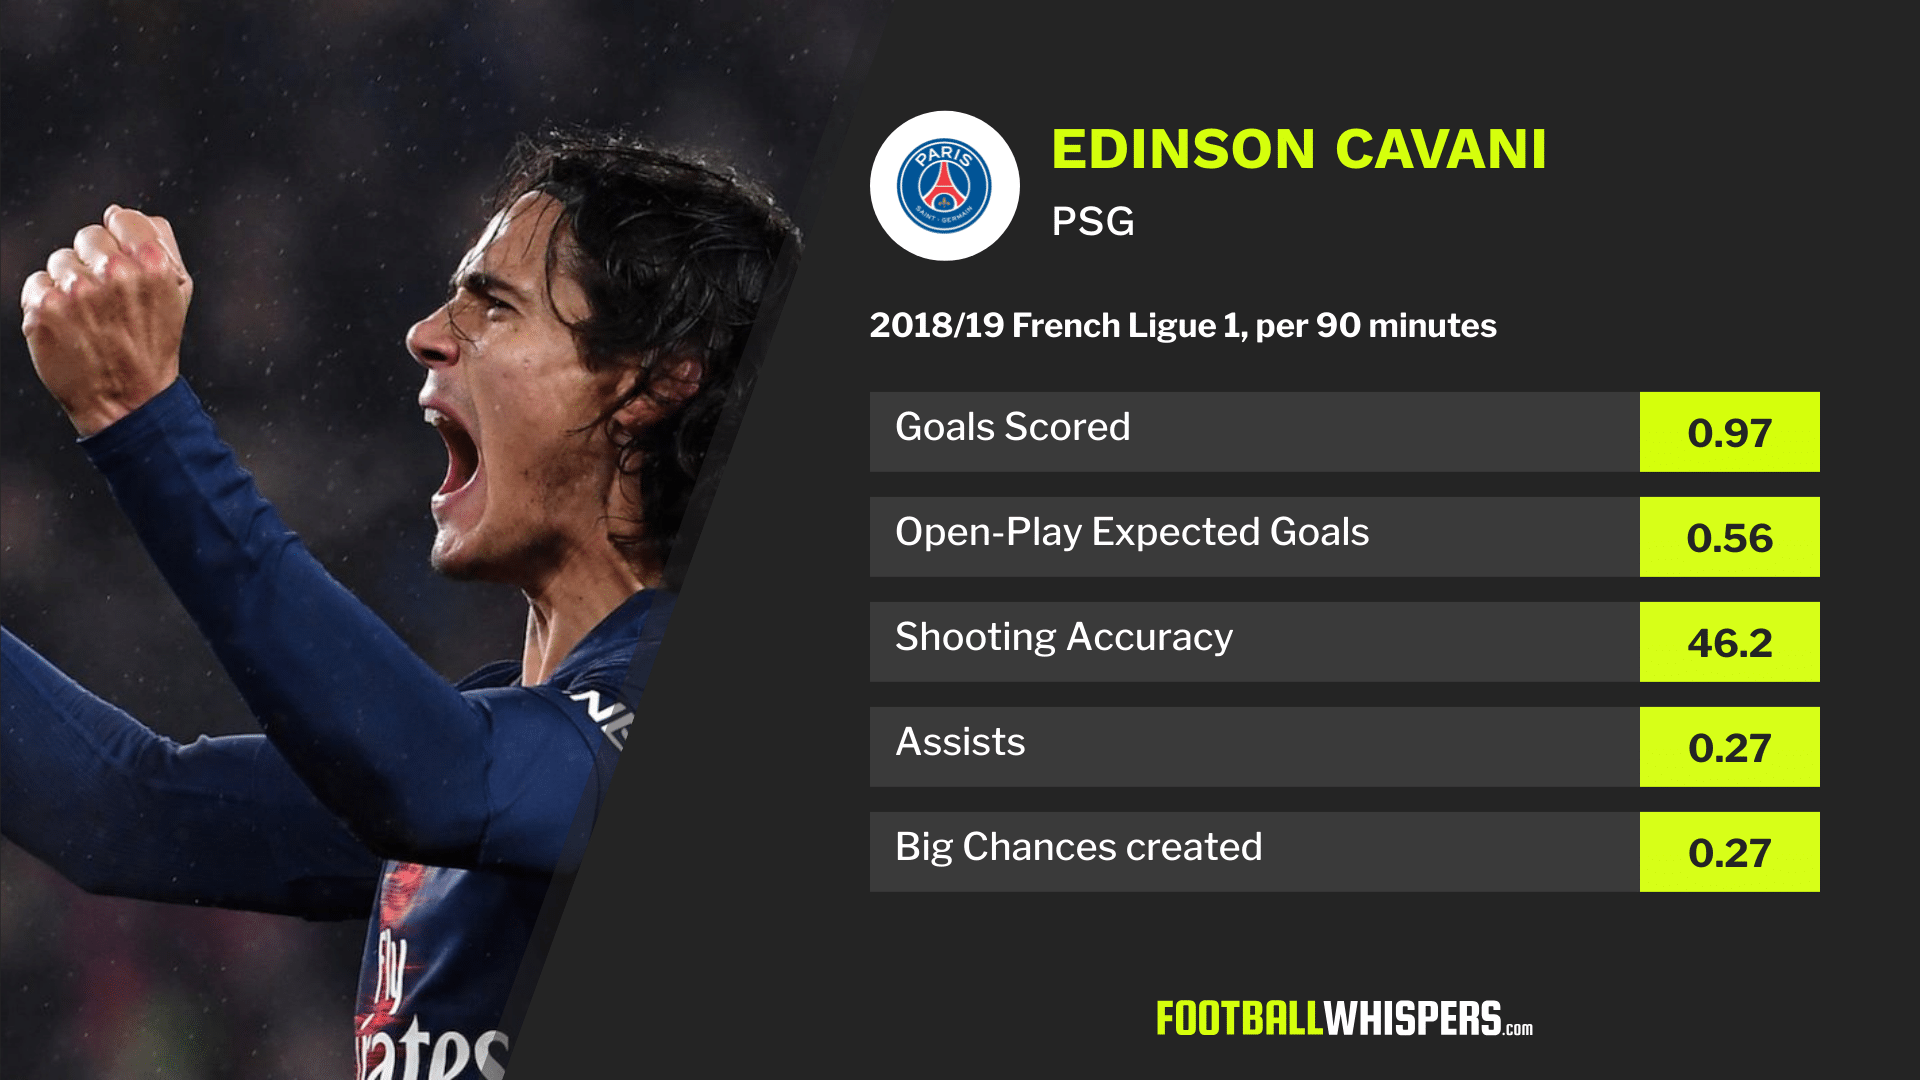 2018/19 Ligue 1 stats for Paris Saint-Germain striker Edinson Cavani